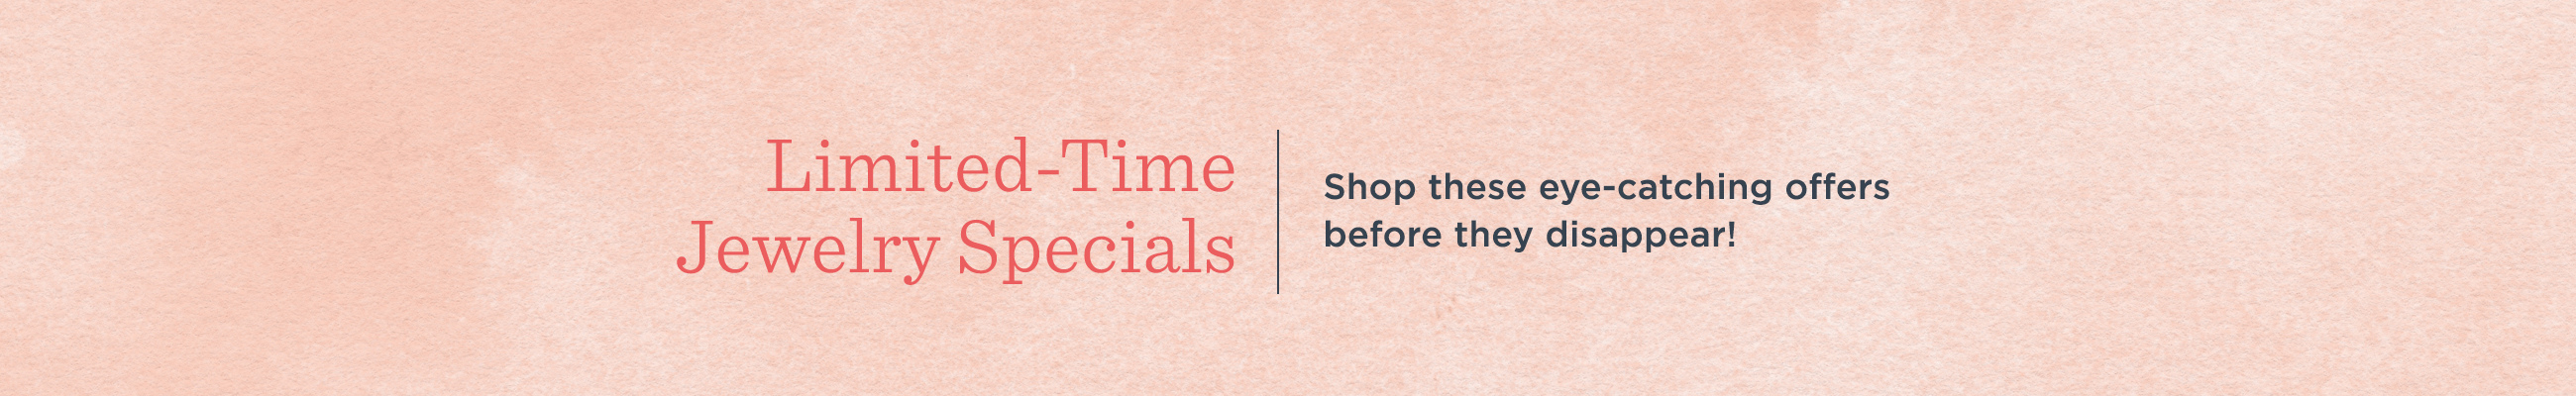 Limited-Time Jewelry Specials  Shop these eye-catching offers before they disappear!